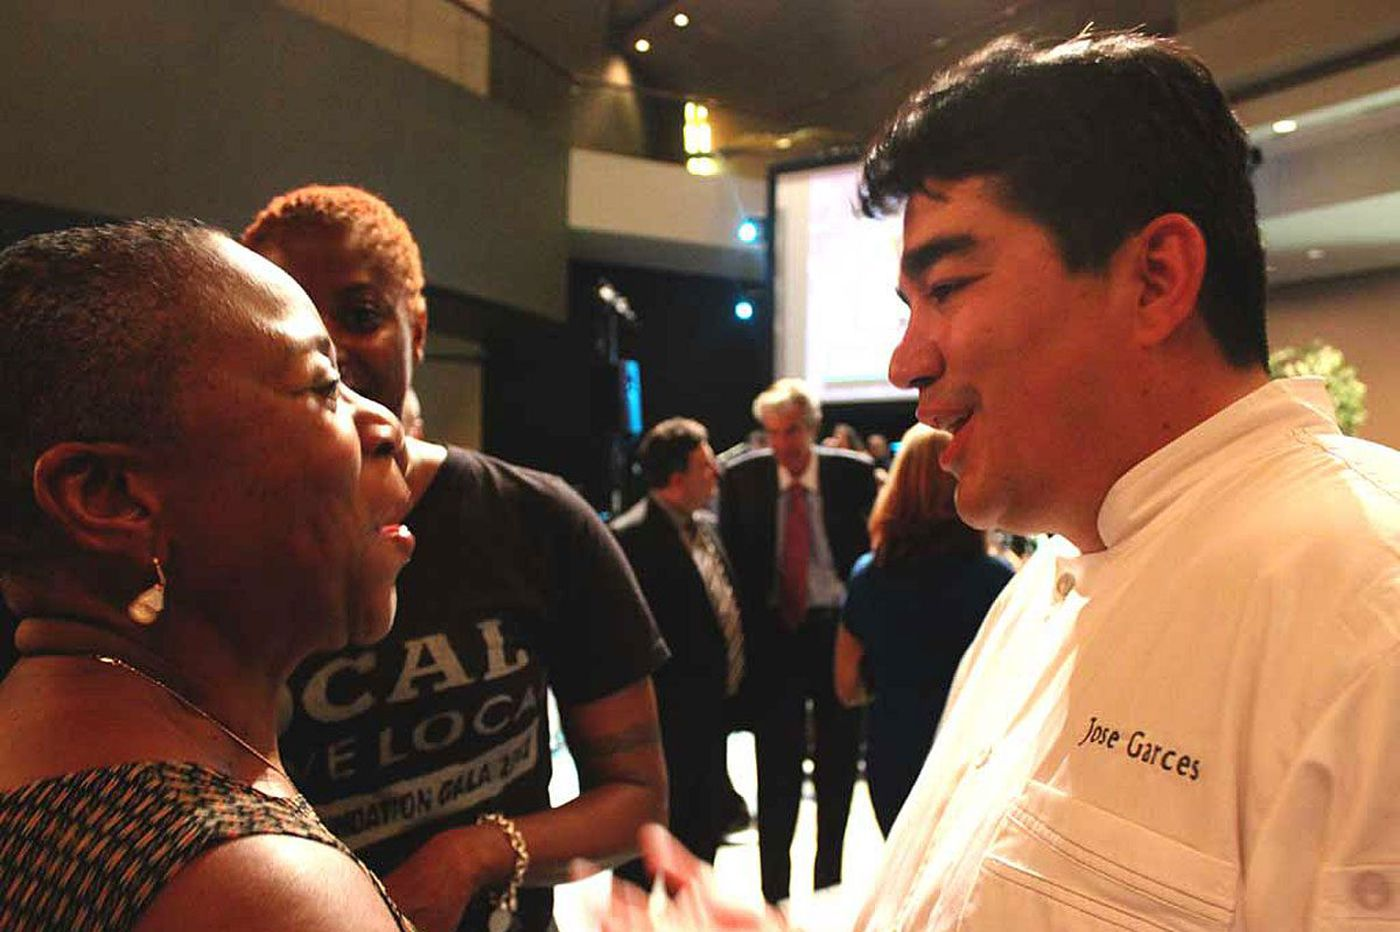 Garces Foundation gathers chefs Friday to benefit immigrant community